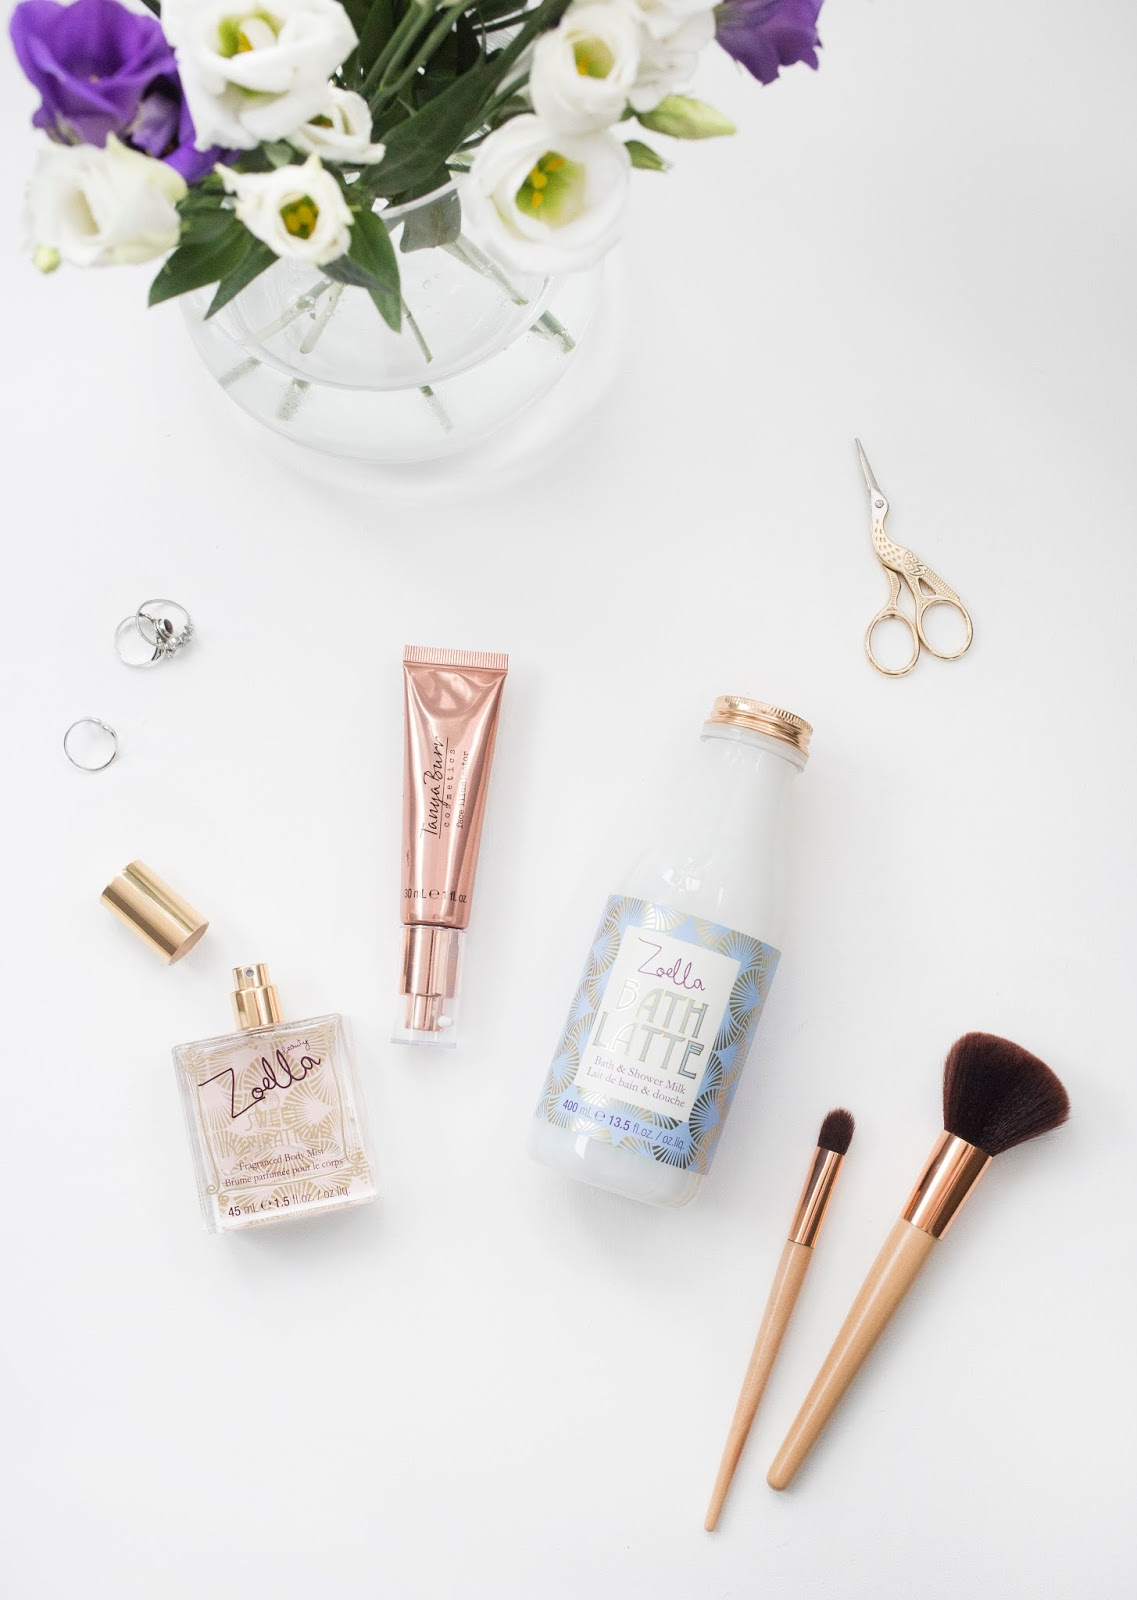 New In | Tanya Burr and Zoella Beauty Products